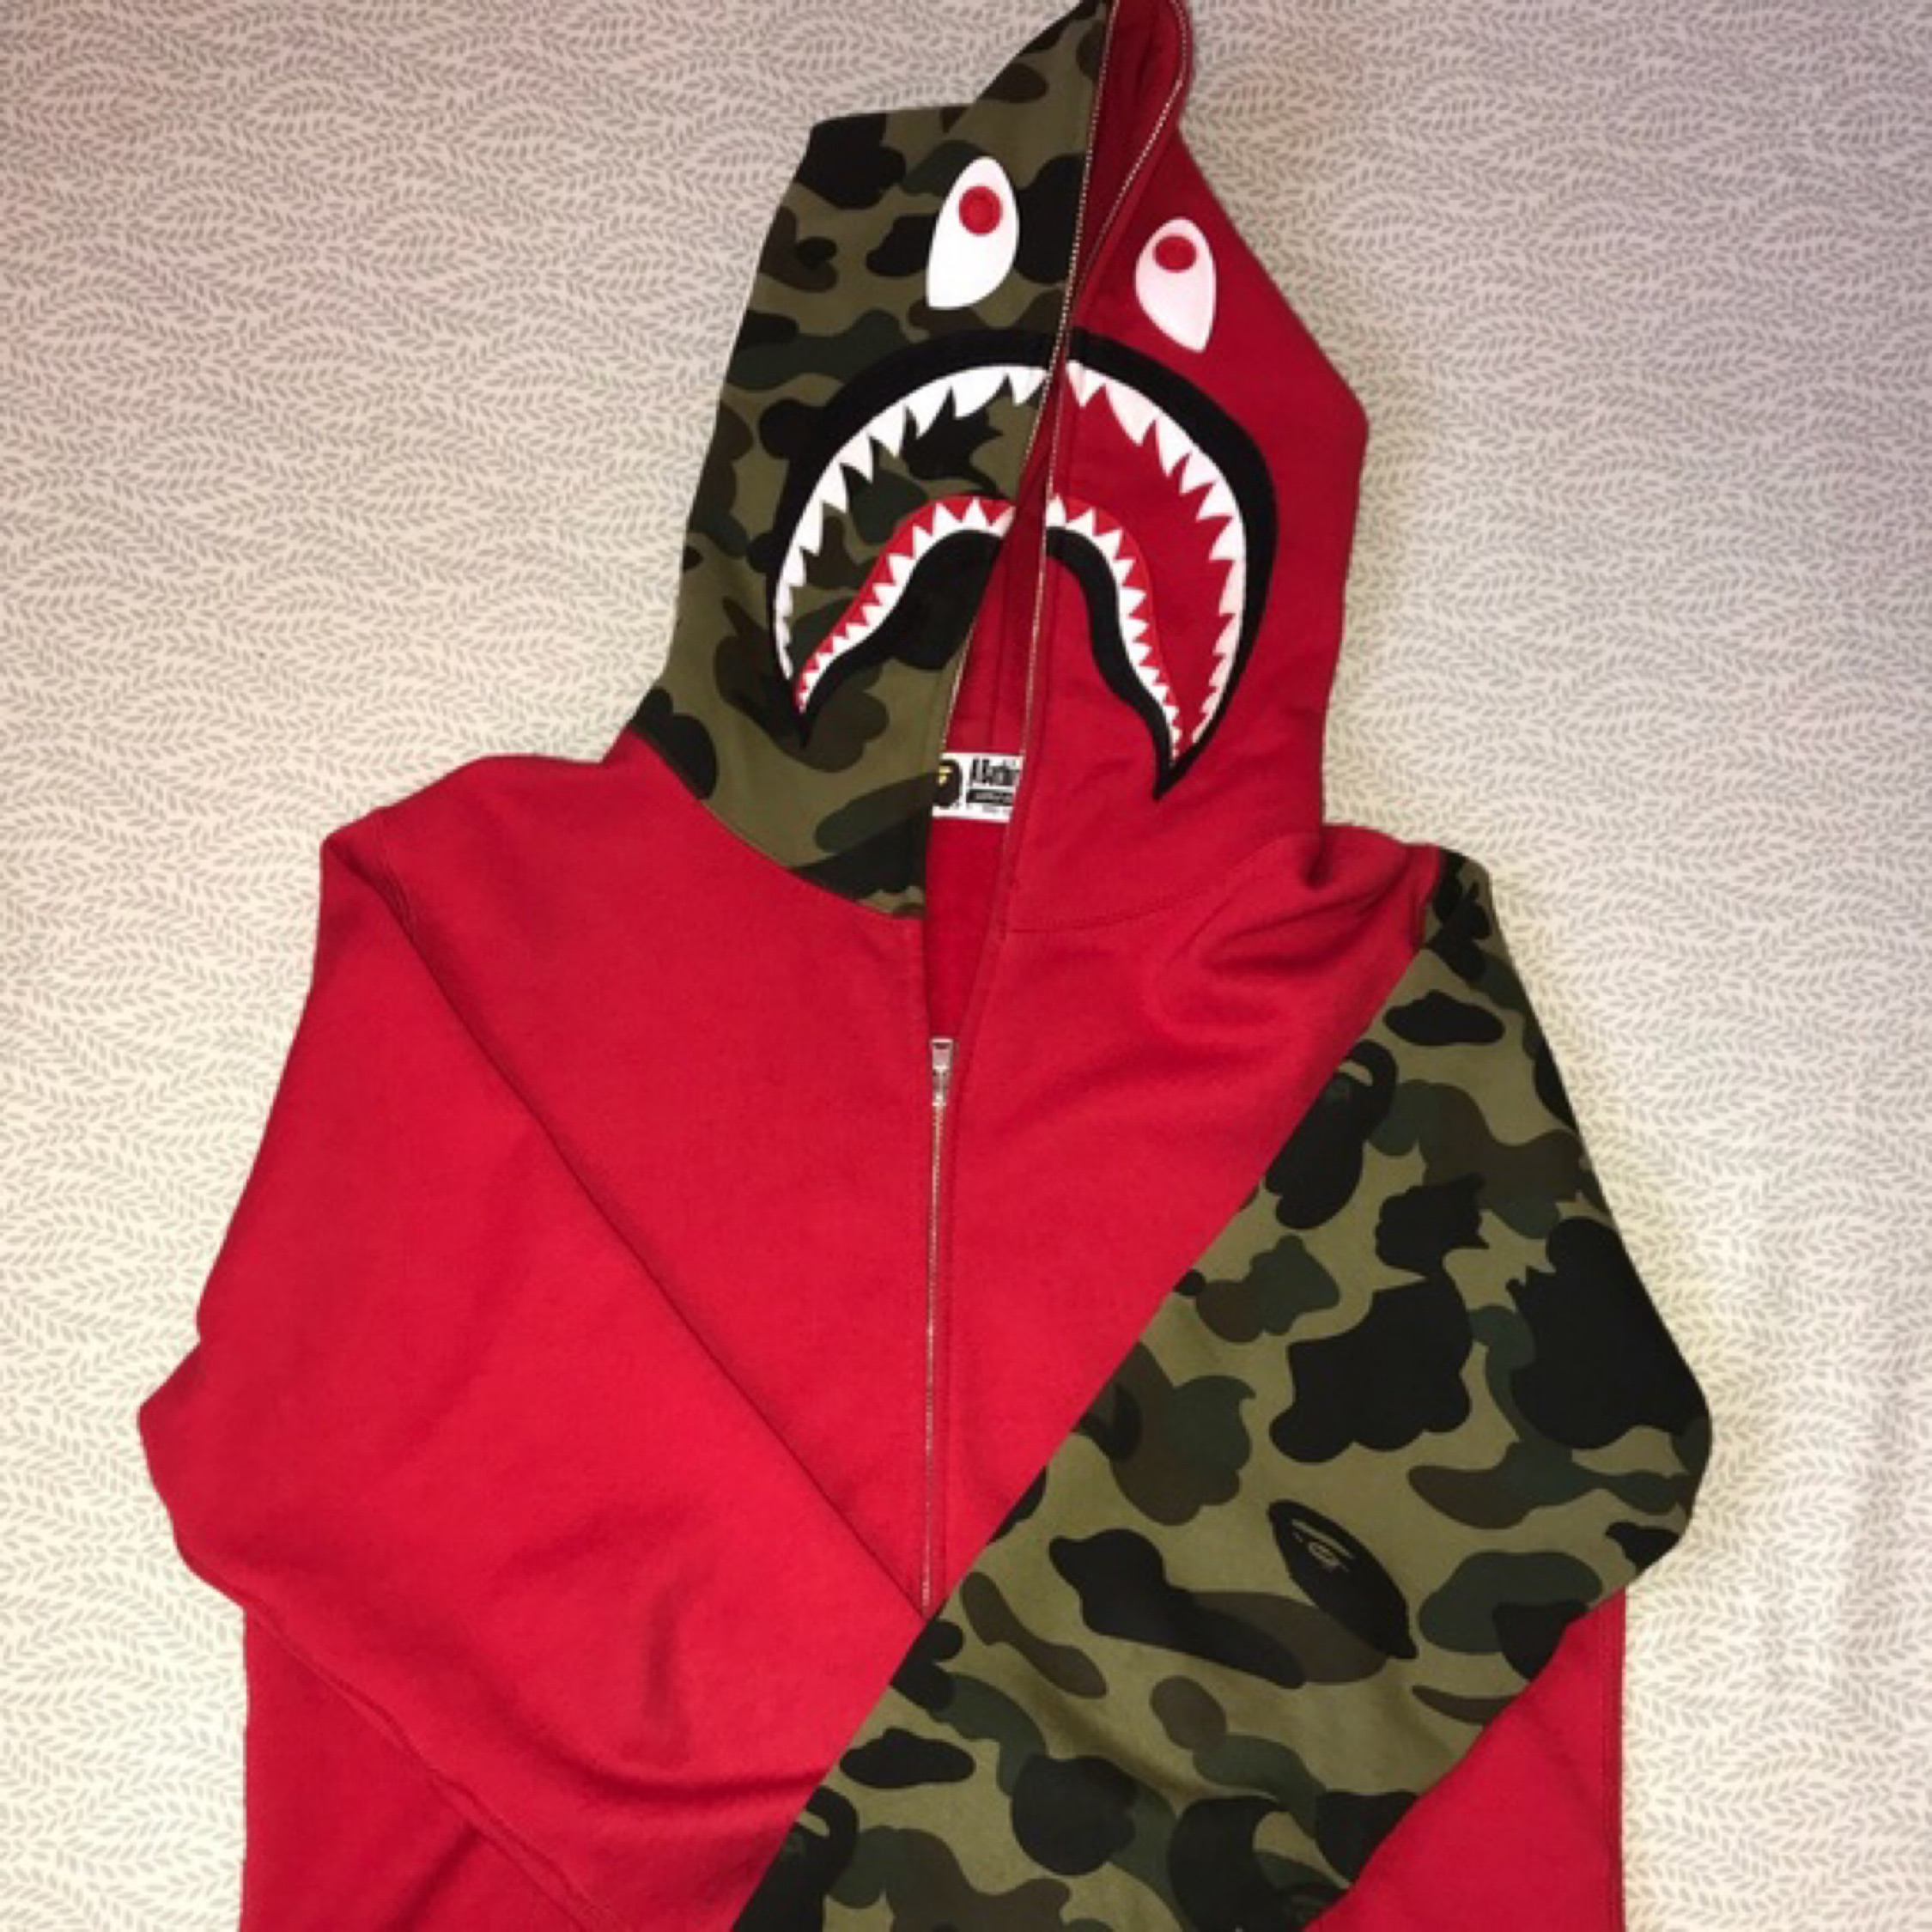 Bape Hoodie Og Very Limited (Trade Accepted)